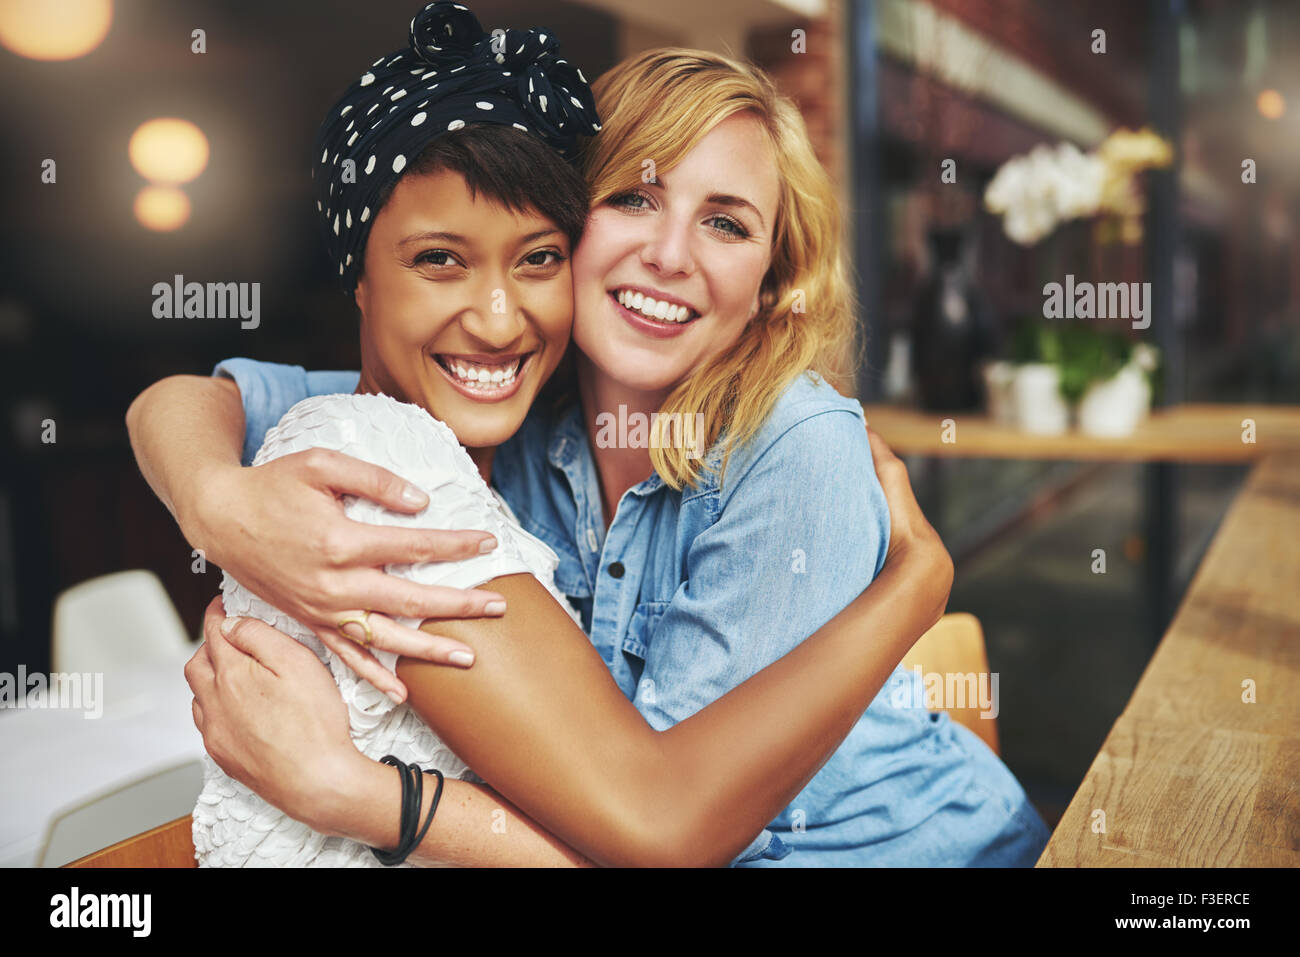 Two happy affectionate young woman hugging each other in a close embrace while laughing and smiling, young multiracial - Stock Image